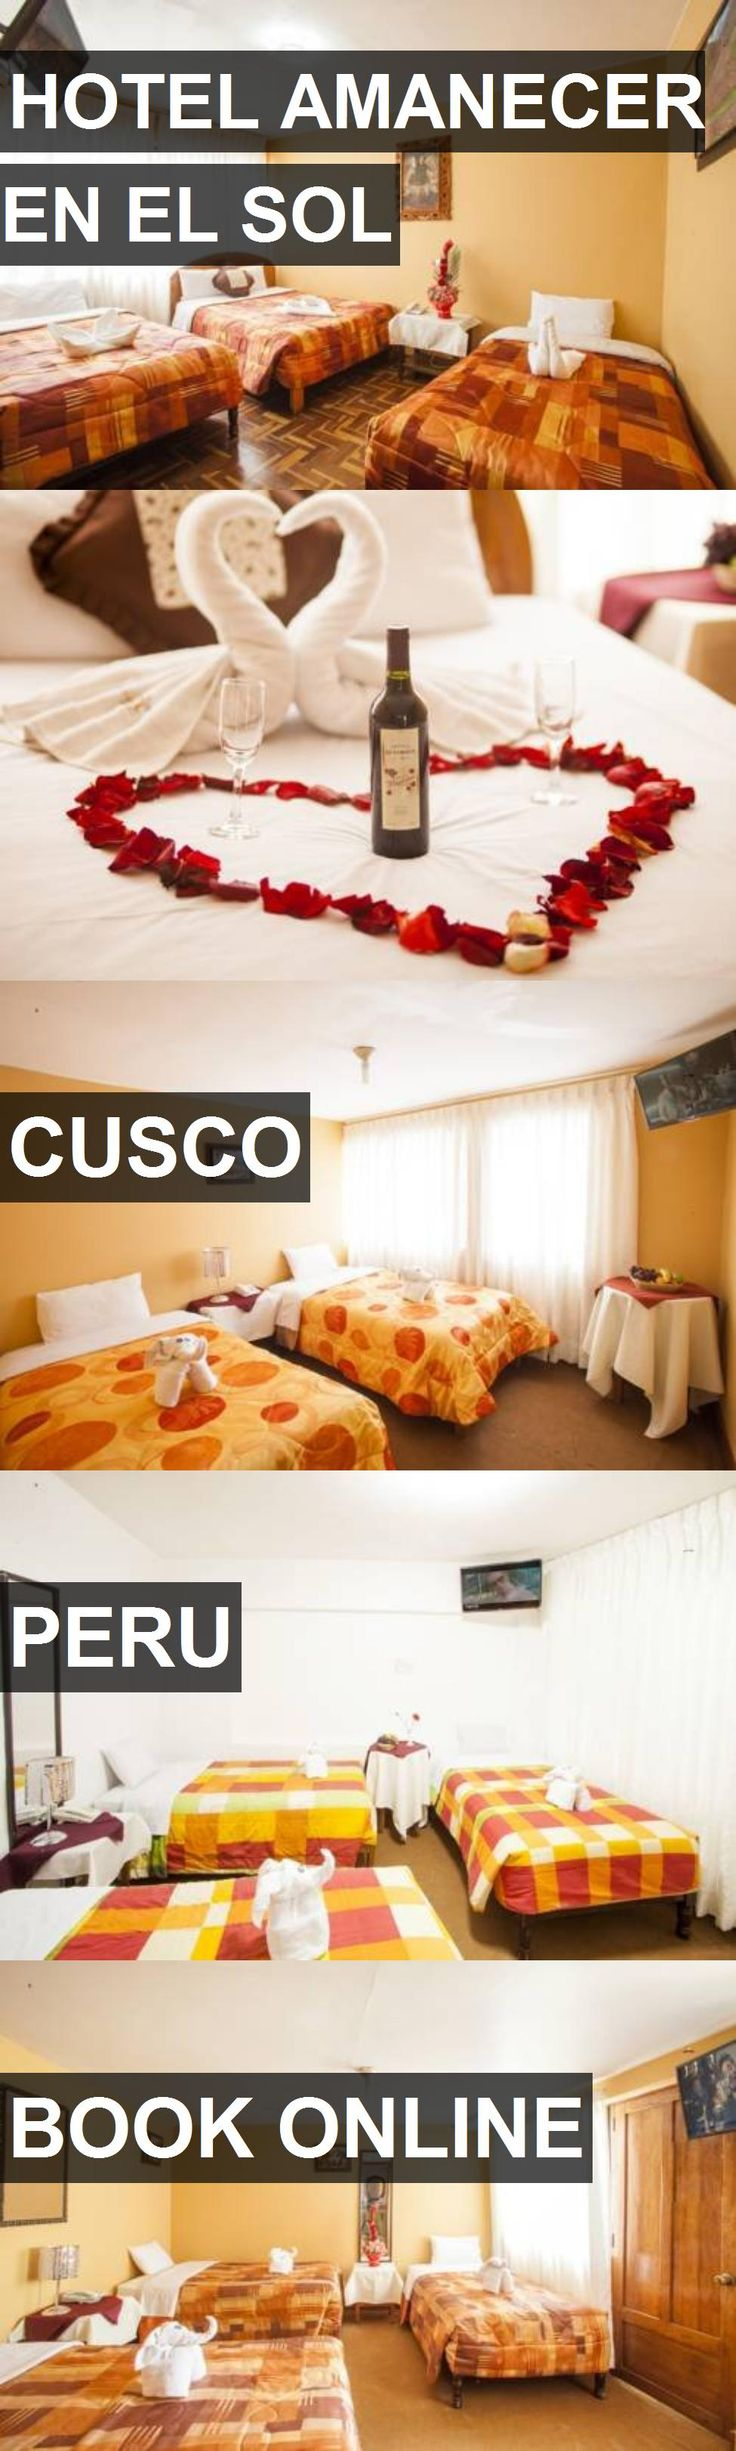 HOTEL AMANECER EN EL SOL in Cusco, Peru. For more information, photos, reviews and best prices please follow the link. #Peru #Cusco #travel #vacation #hotel